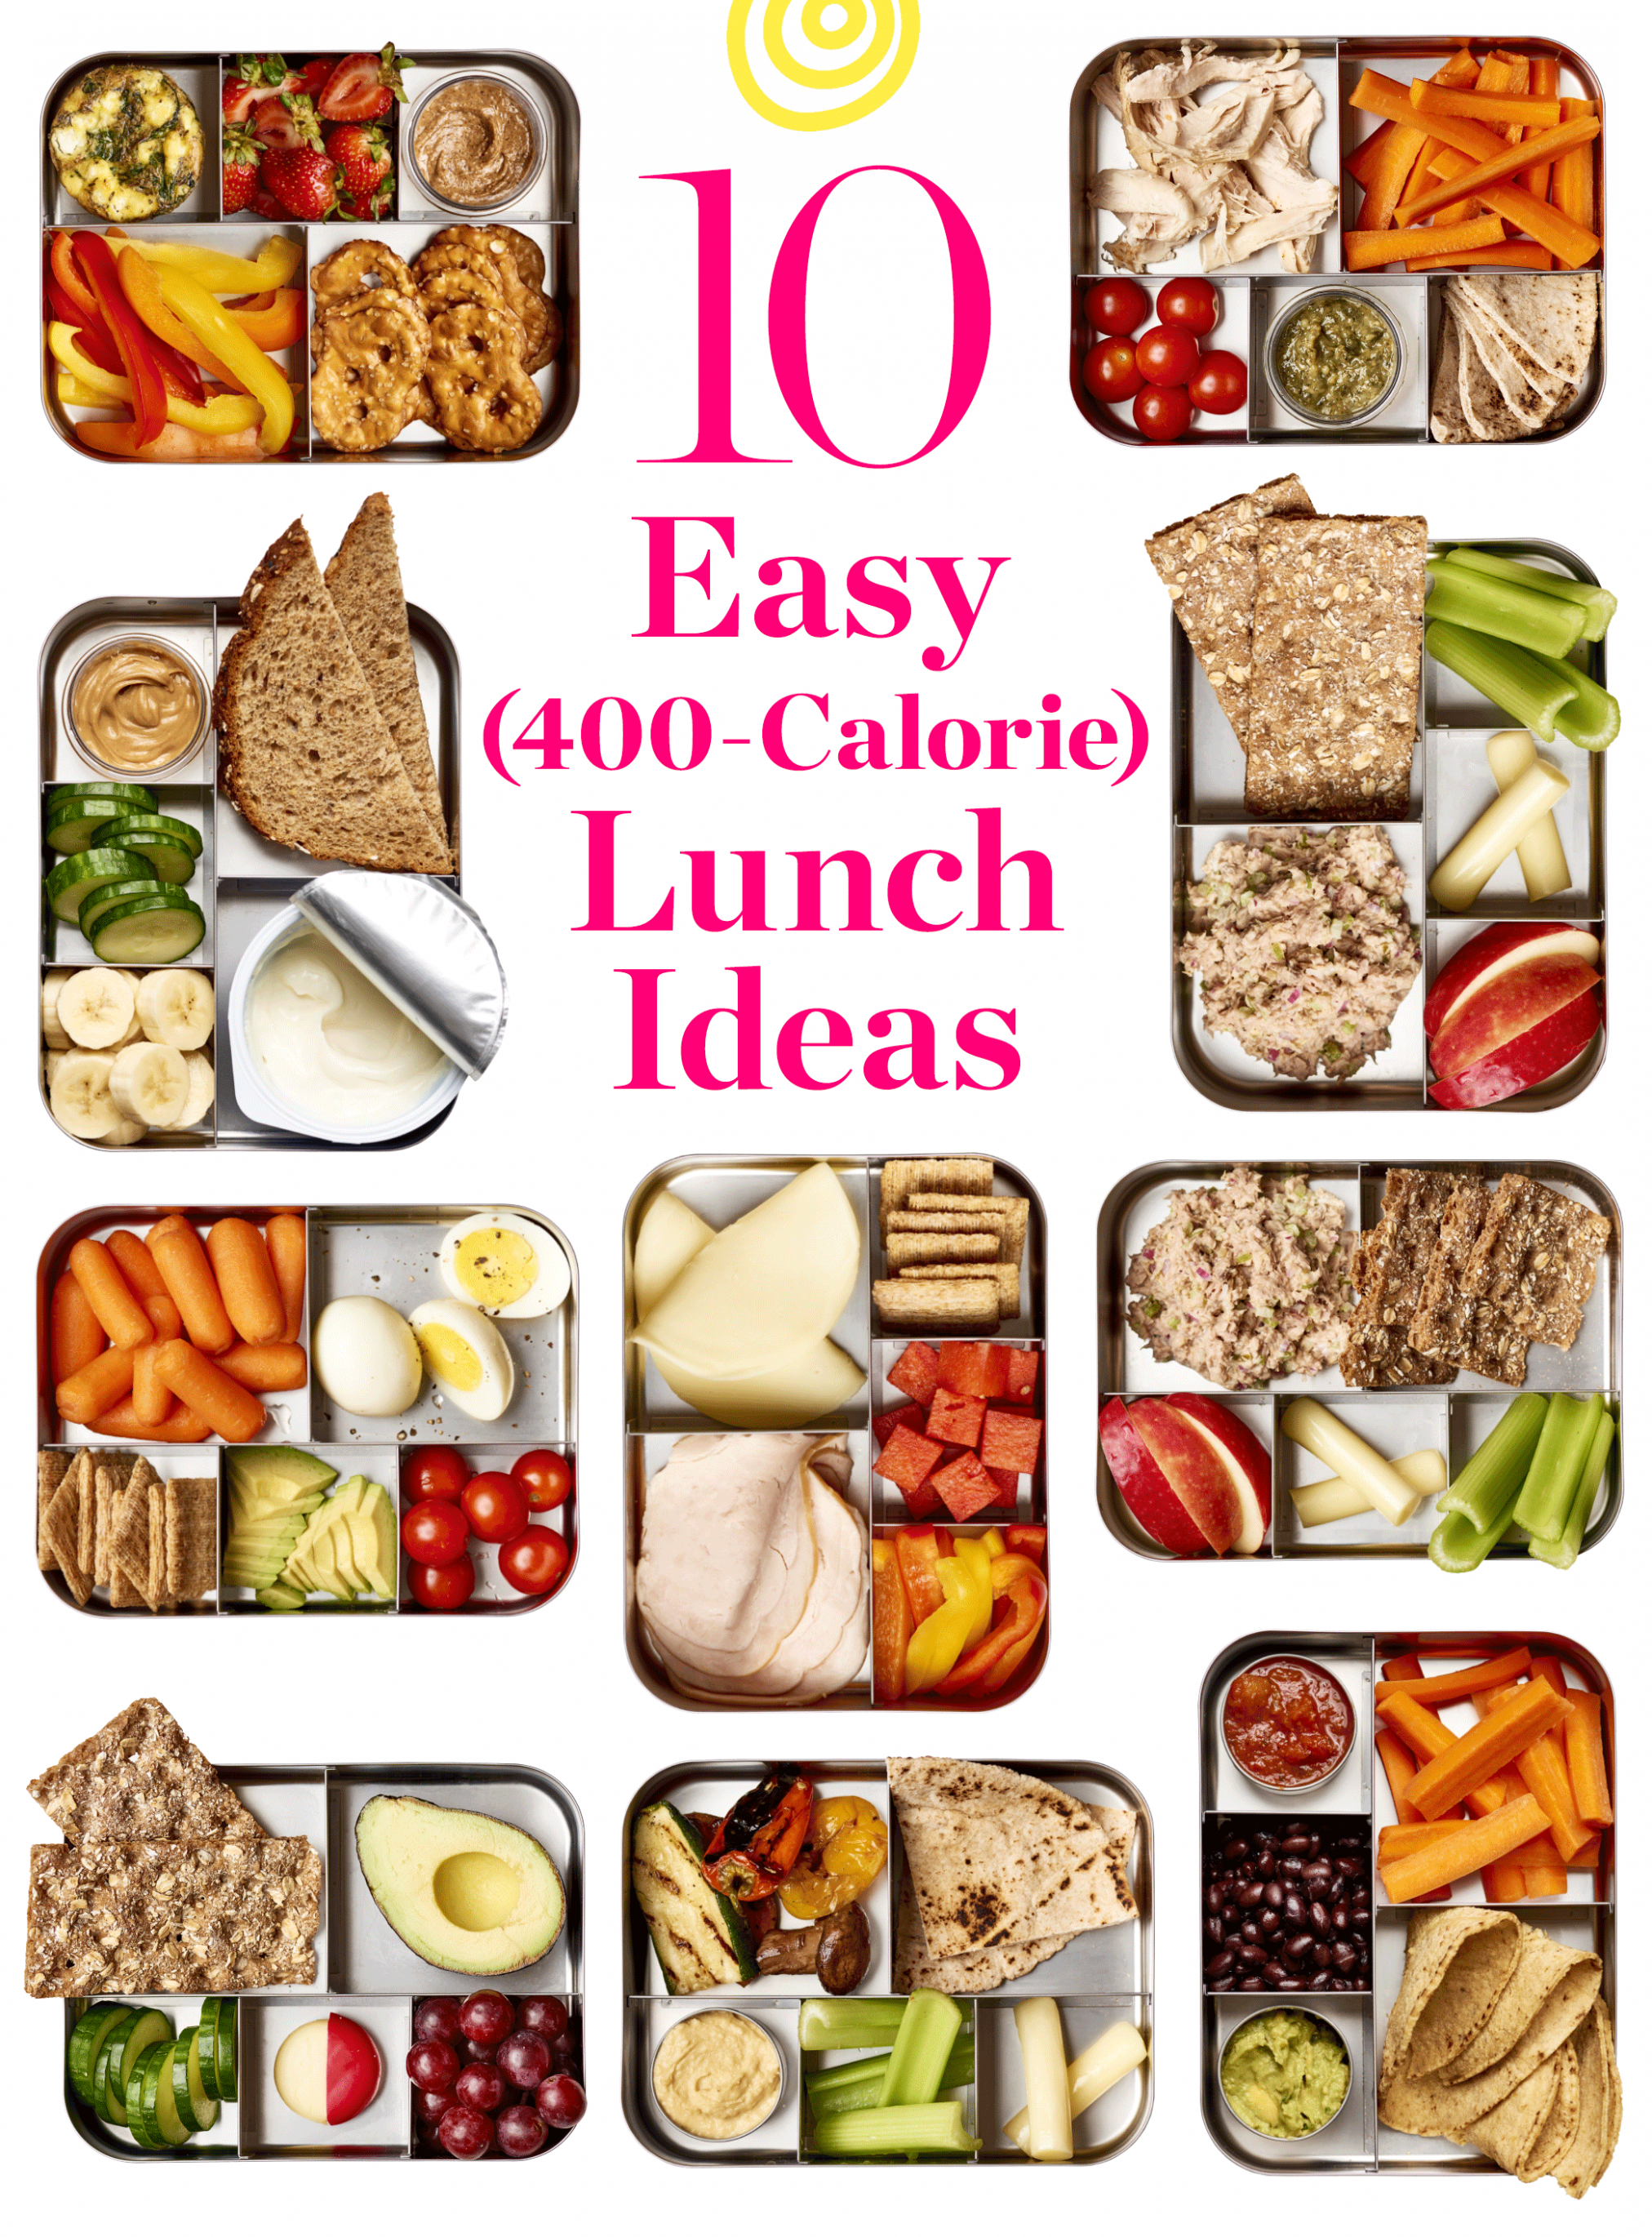 12 Easy Lunch Ideas Under 12 Calories | Kitchn - Easy Recipes High In Calories